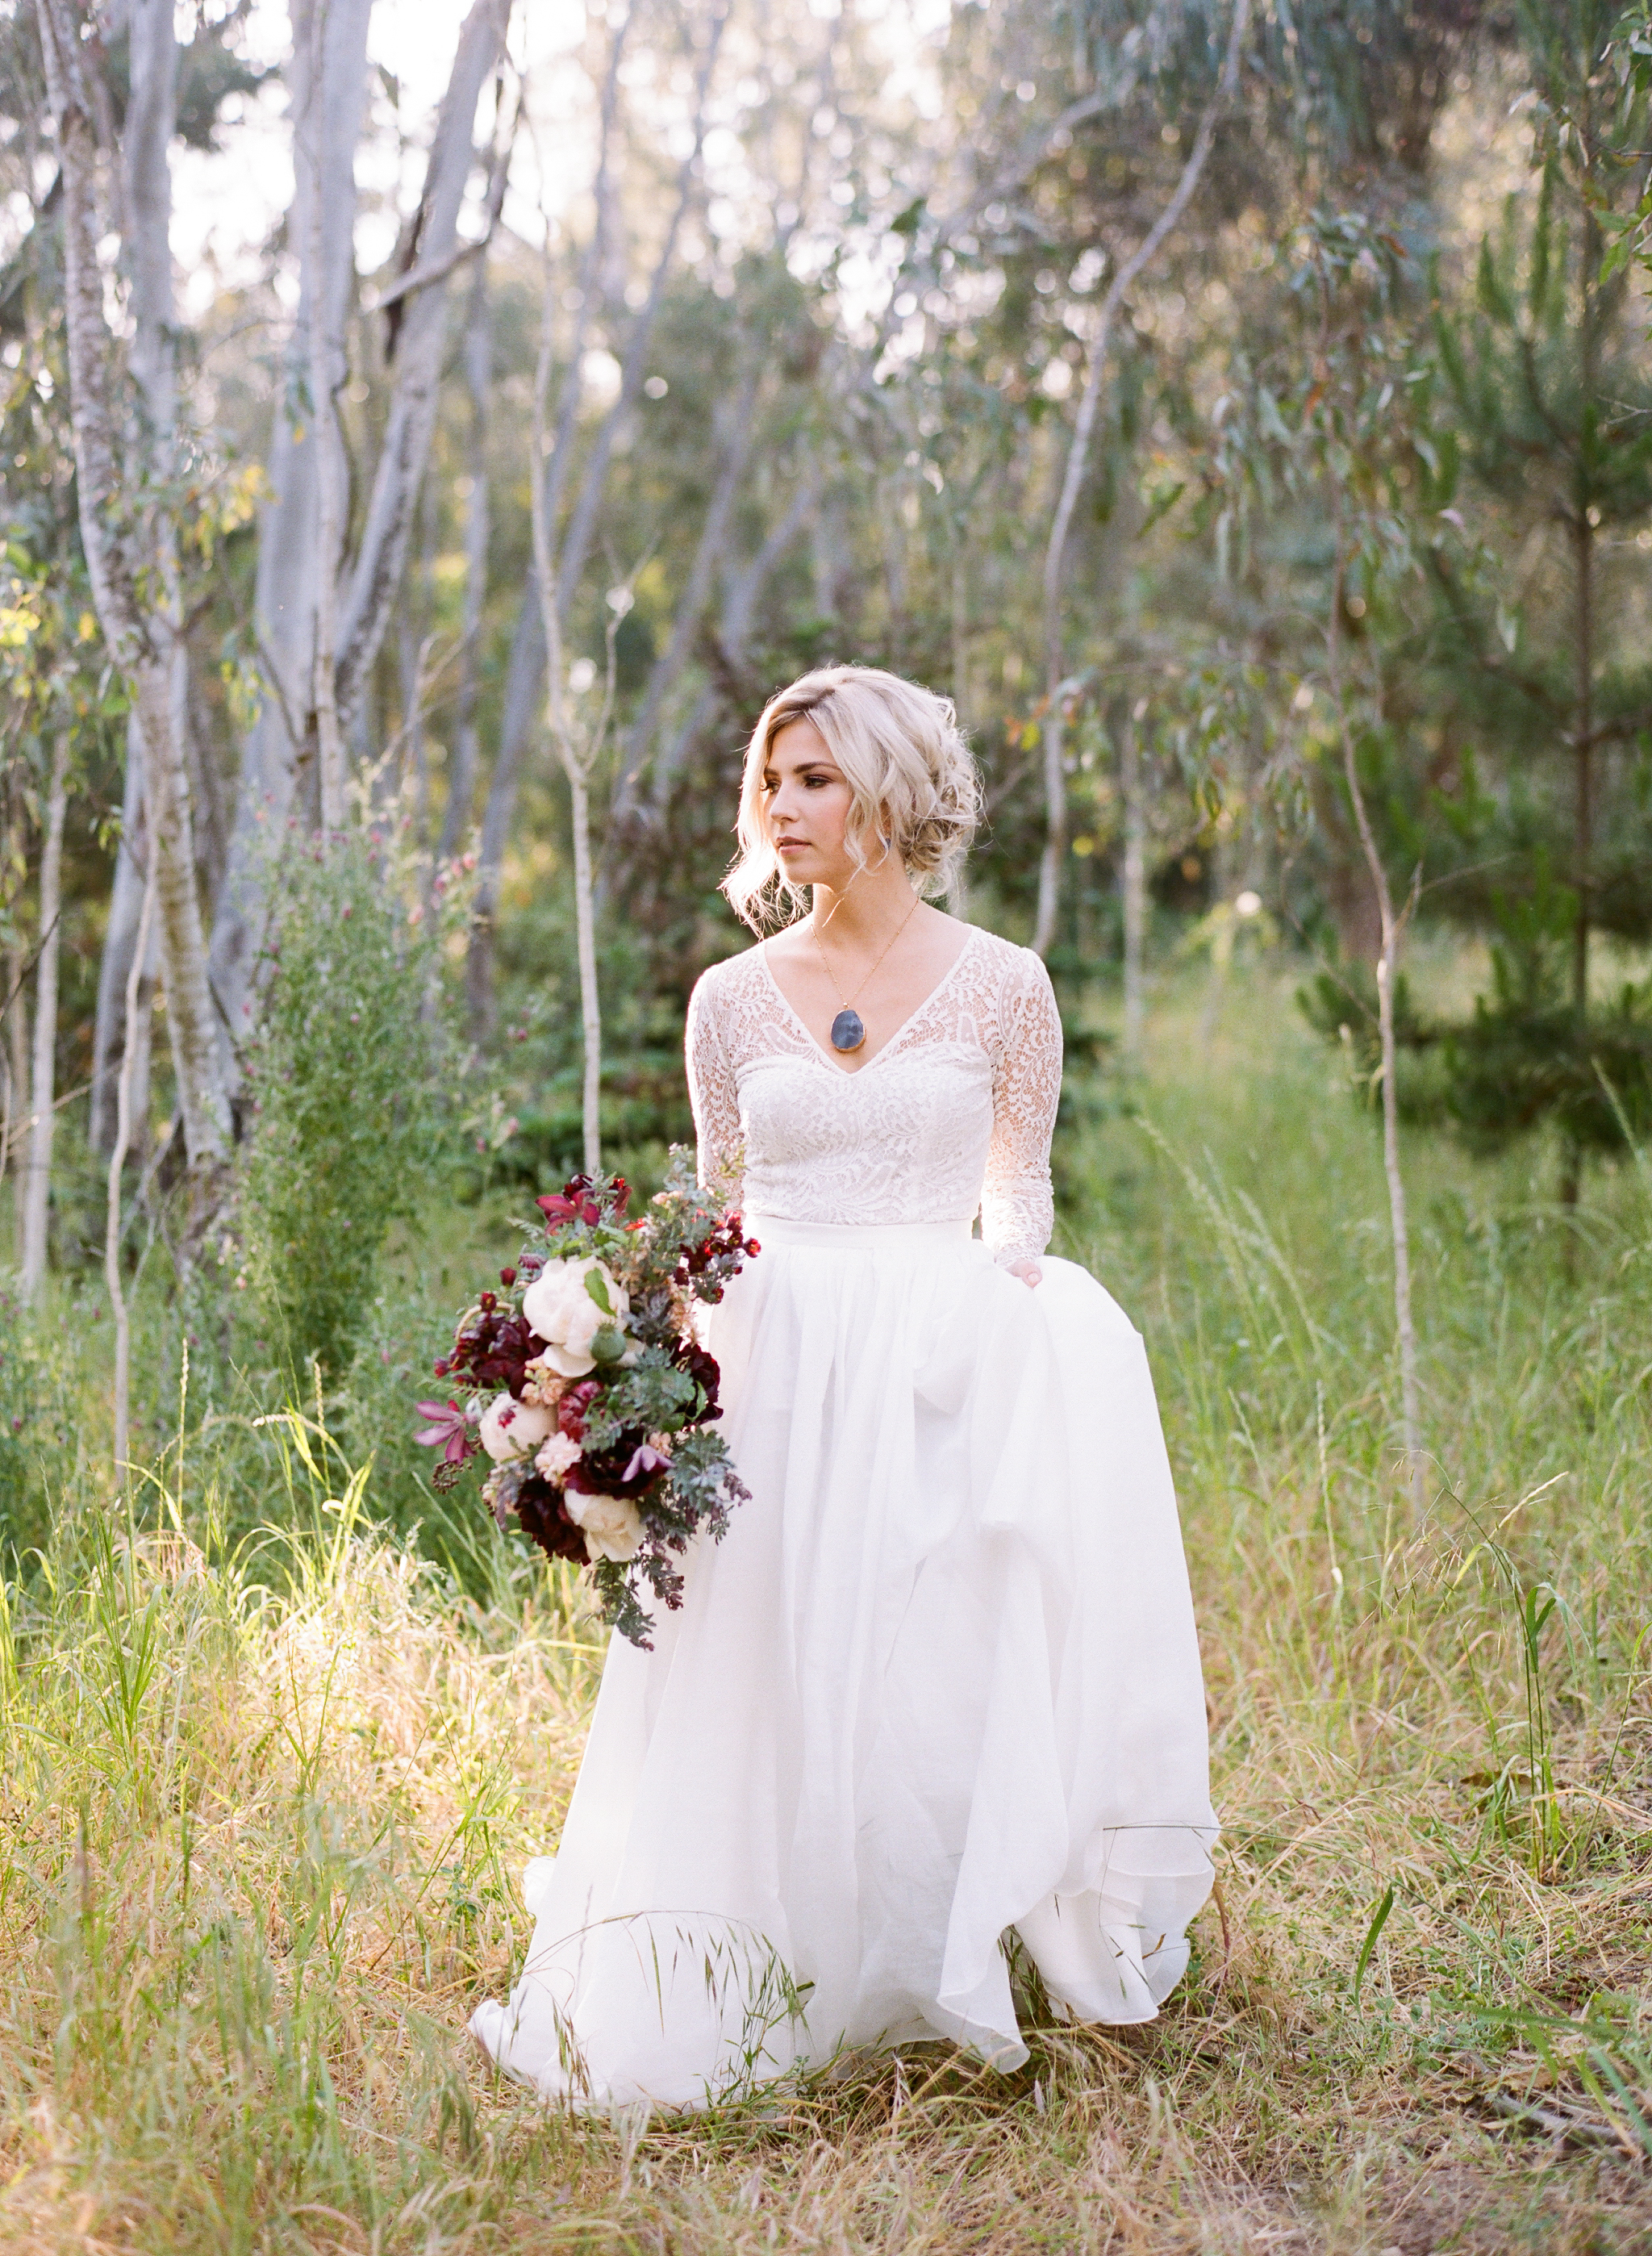 Ellwood Bluffs Bridal Session | California Photographer | Wedding Inspiration | Taken by Sarah | Burgundy Bridal Bouquet | Ethereal Bride | Joy Wed | Fine Art Wedding